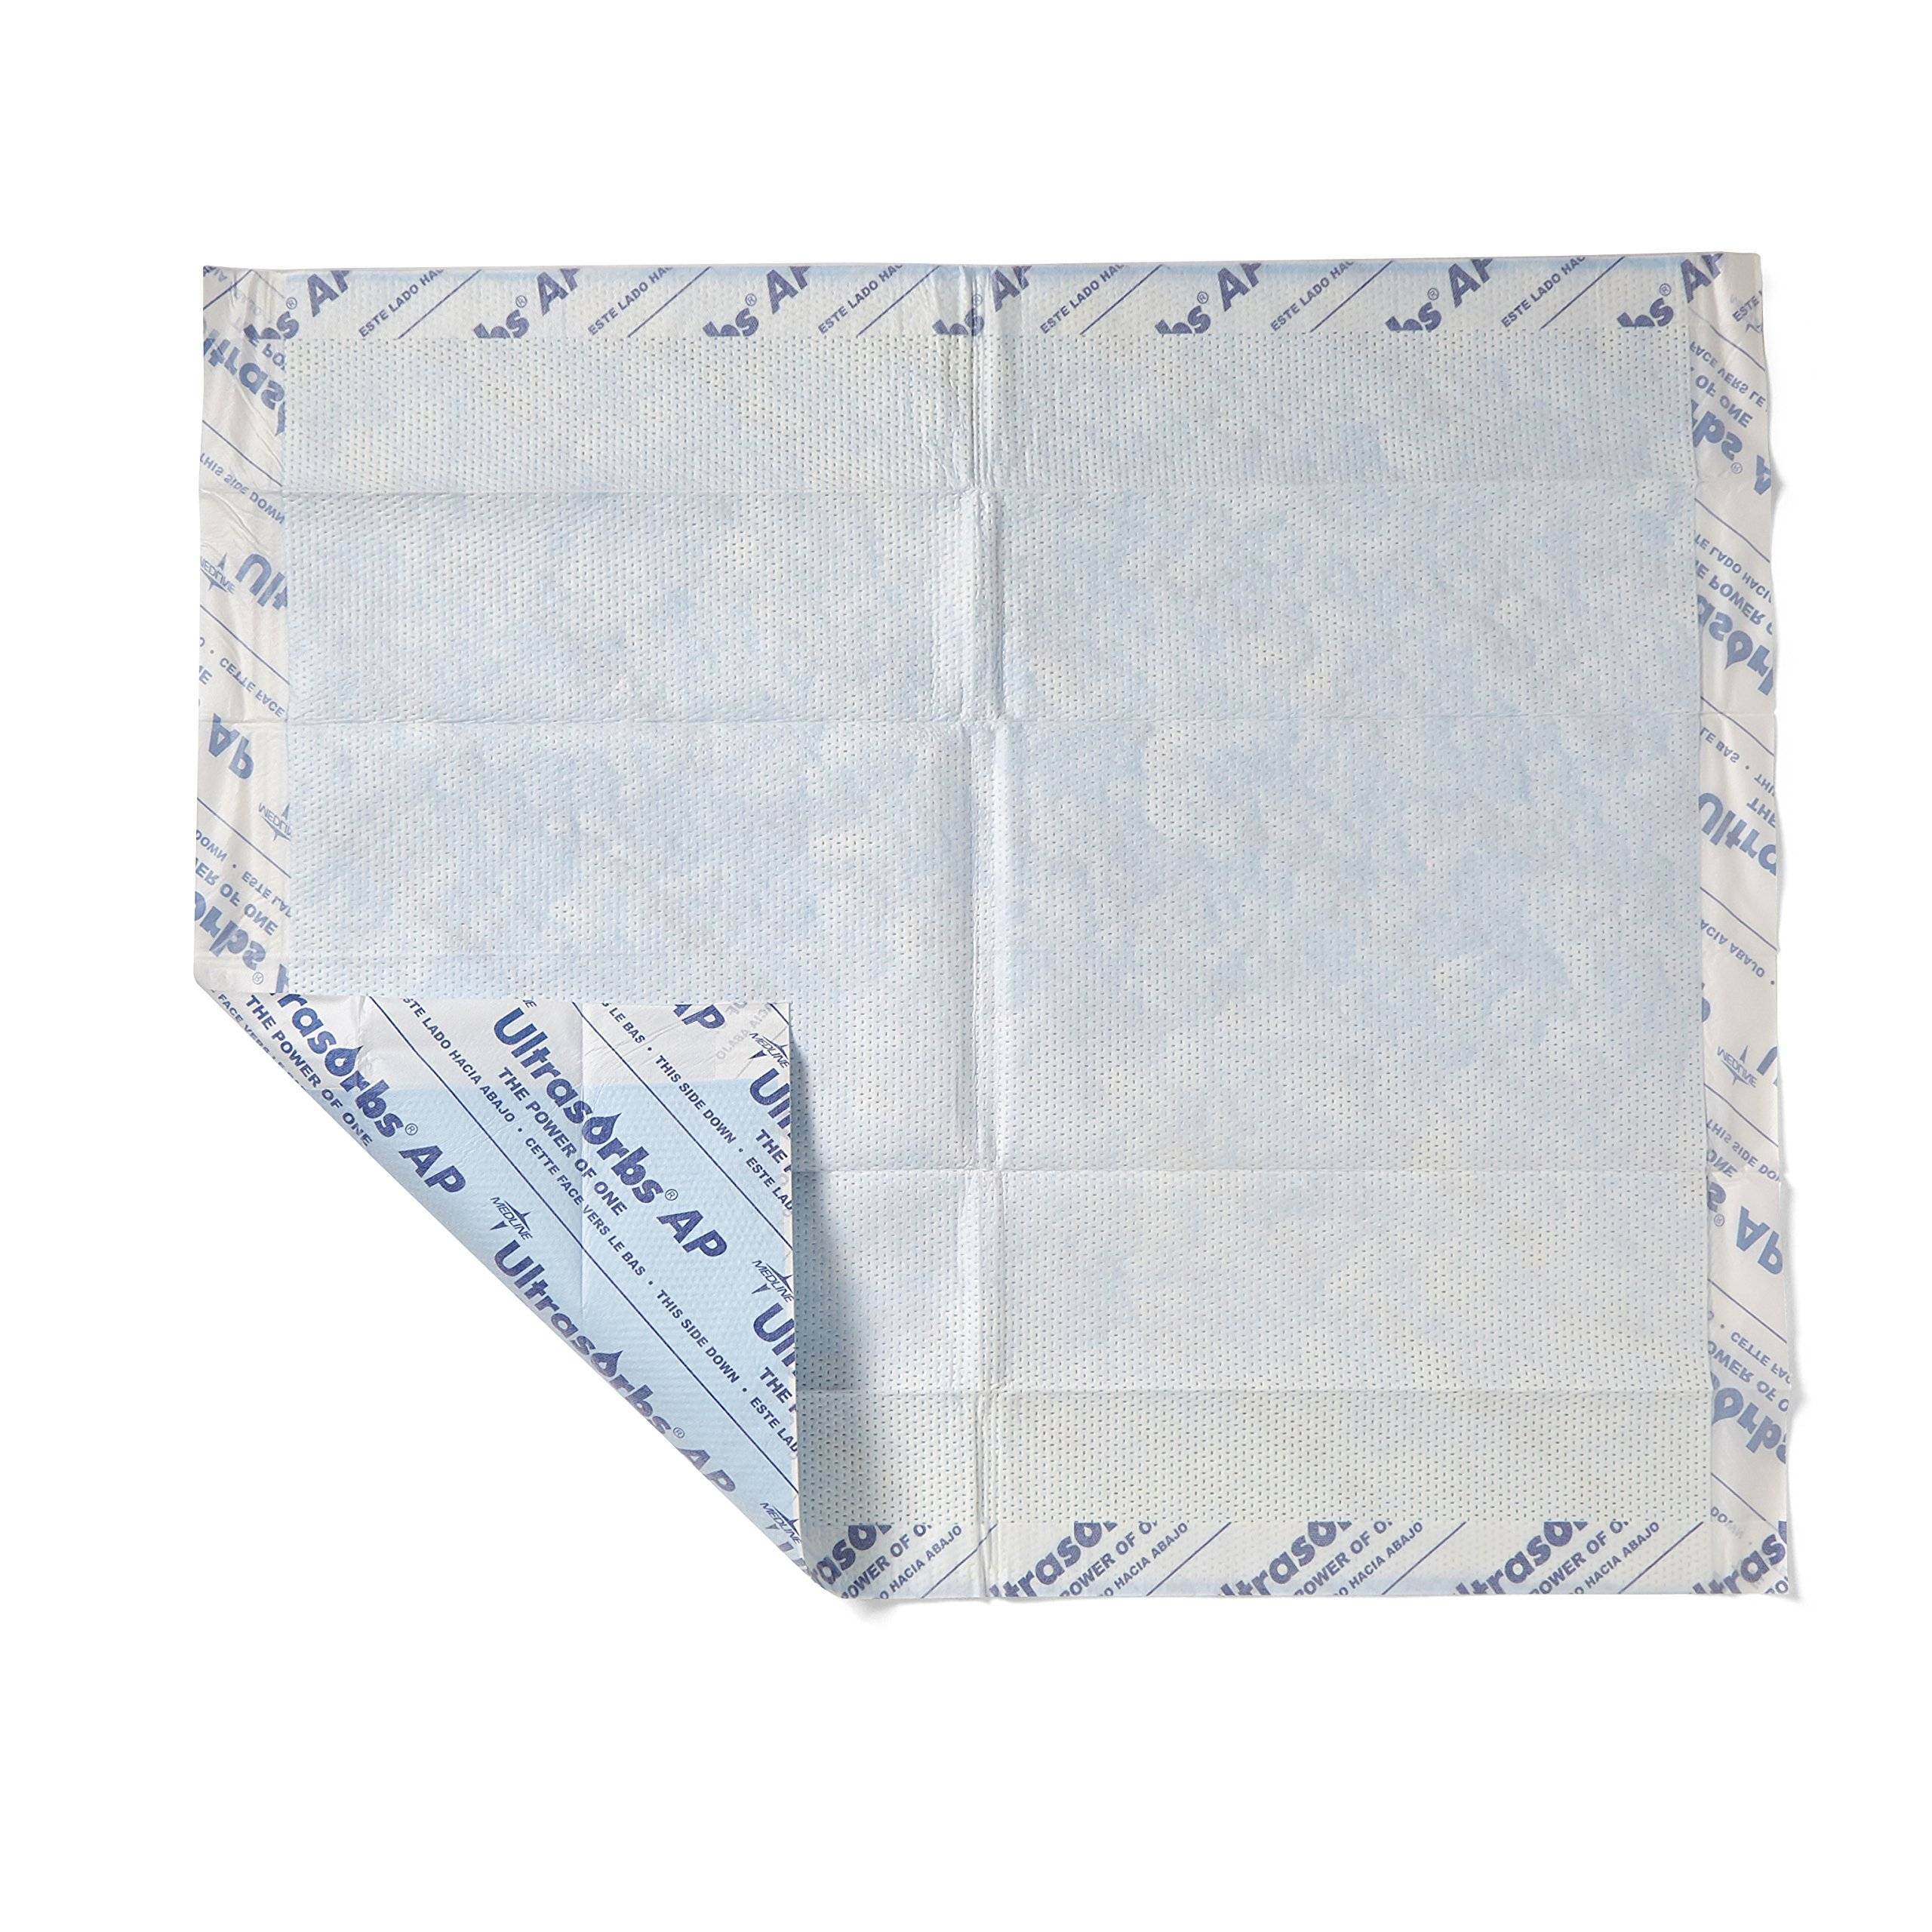 Medline Ultrasorbs AP Drypads, Super Absorbent Disposable Underpad, 30 x 36 inches, 10